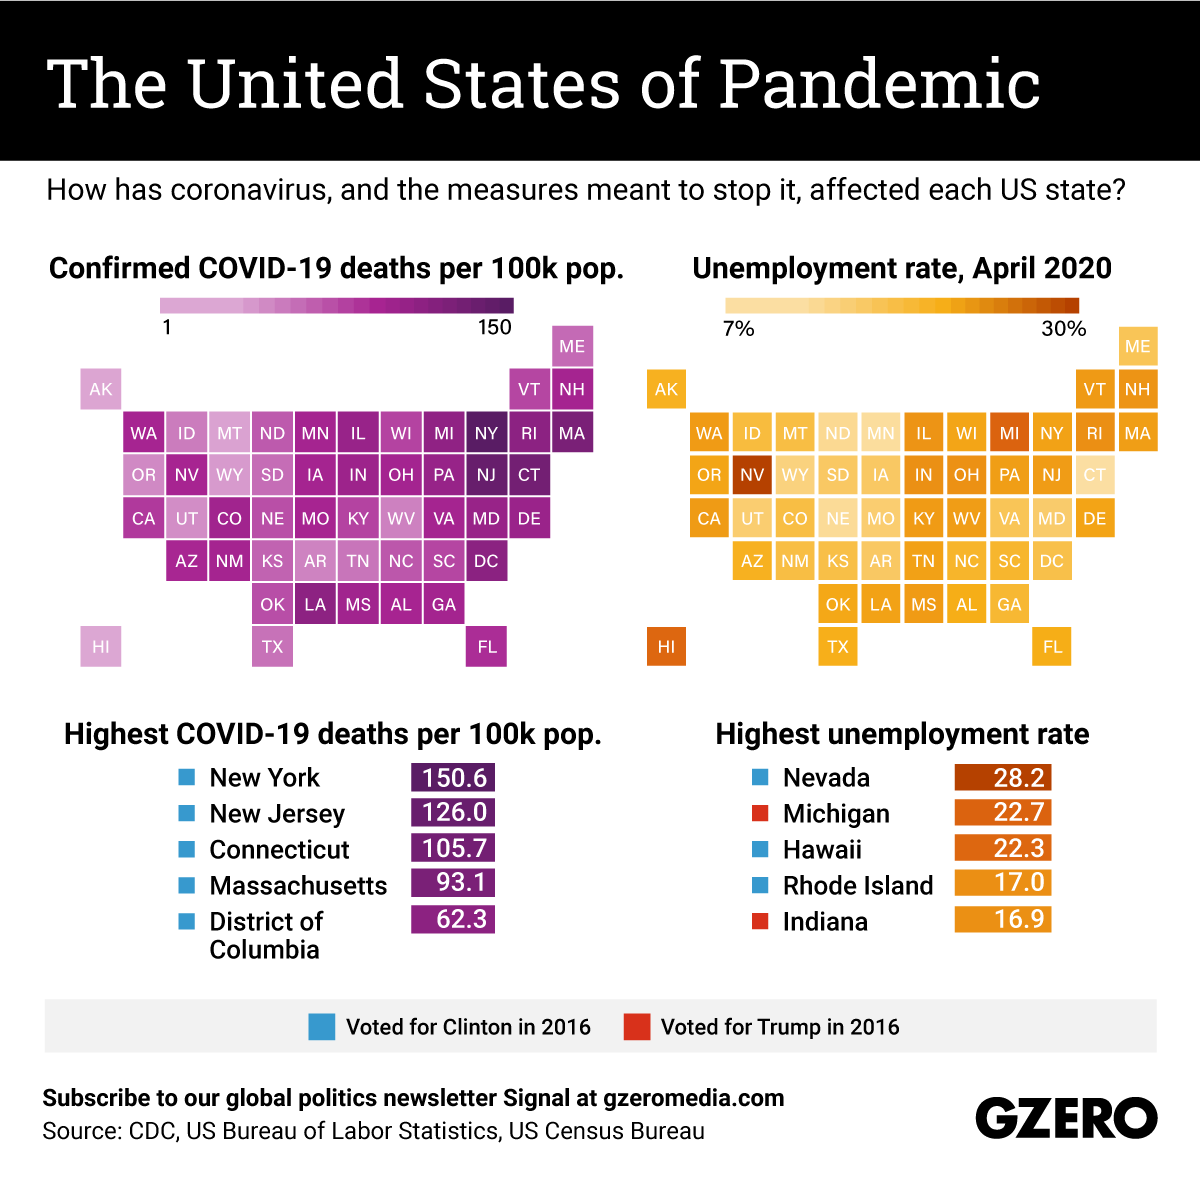 The Graphic Truth: The United States of Pandemic